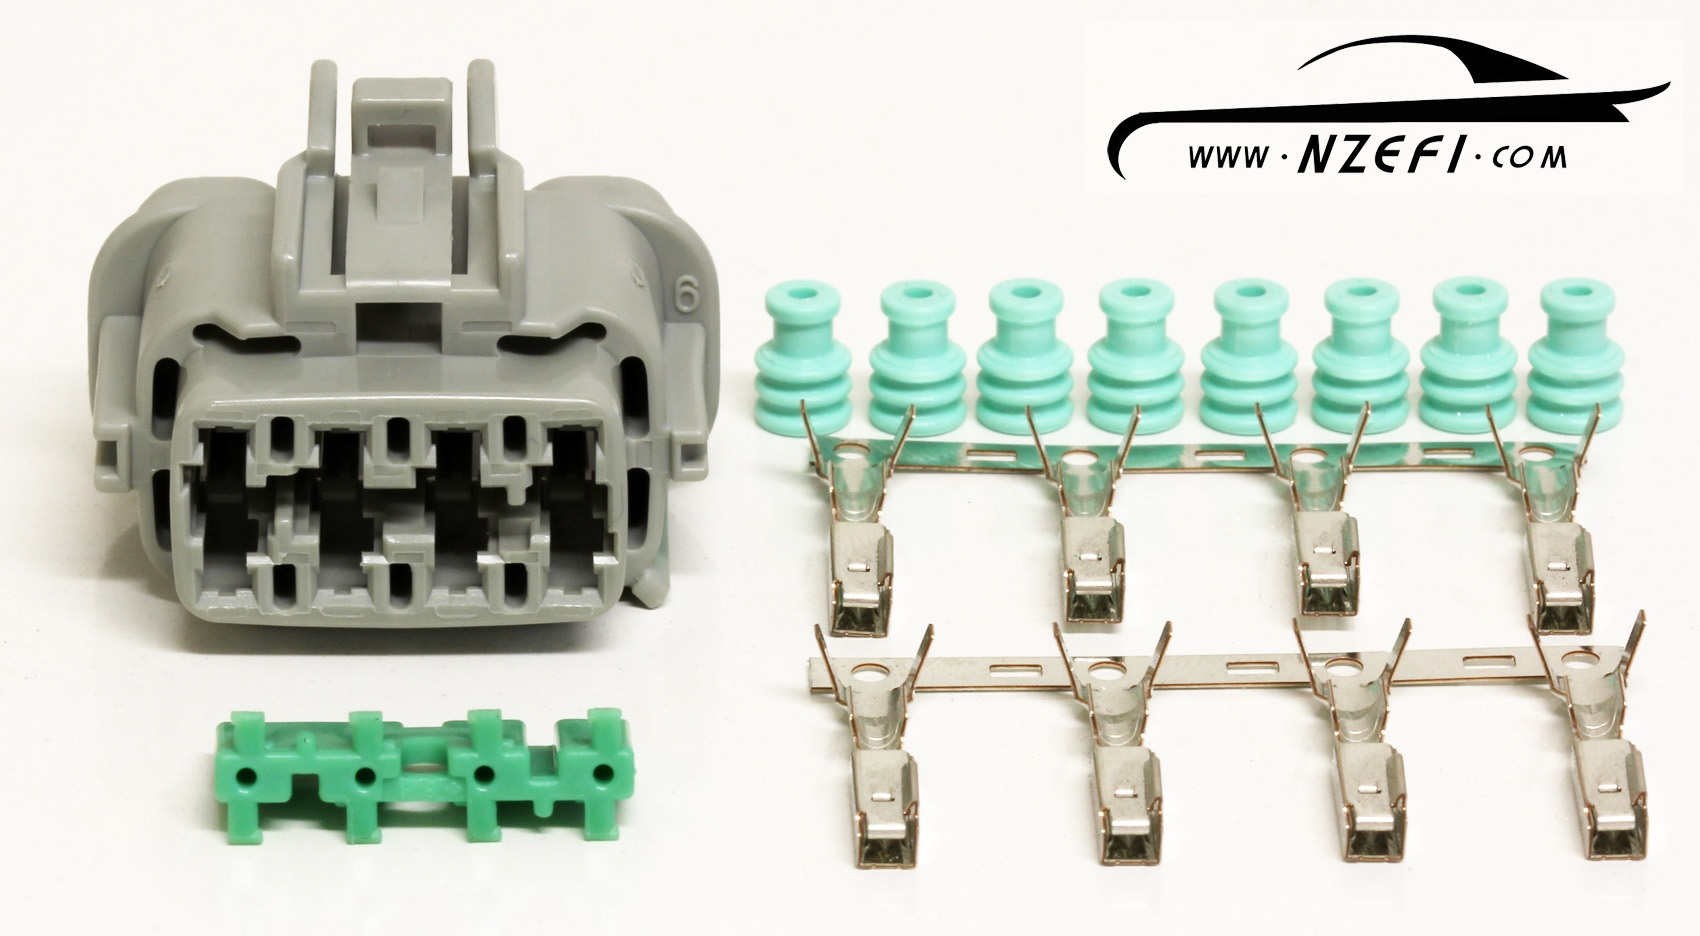 Nissan R33 R34 RB25DET and S14 S15 SR20DET Injector Harness Connector Engine Loom Side nissan rb25det & sr20det injector harness connector (engine loom s14 rb25 wiring harness at mifinder.co